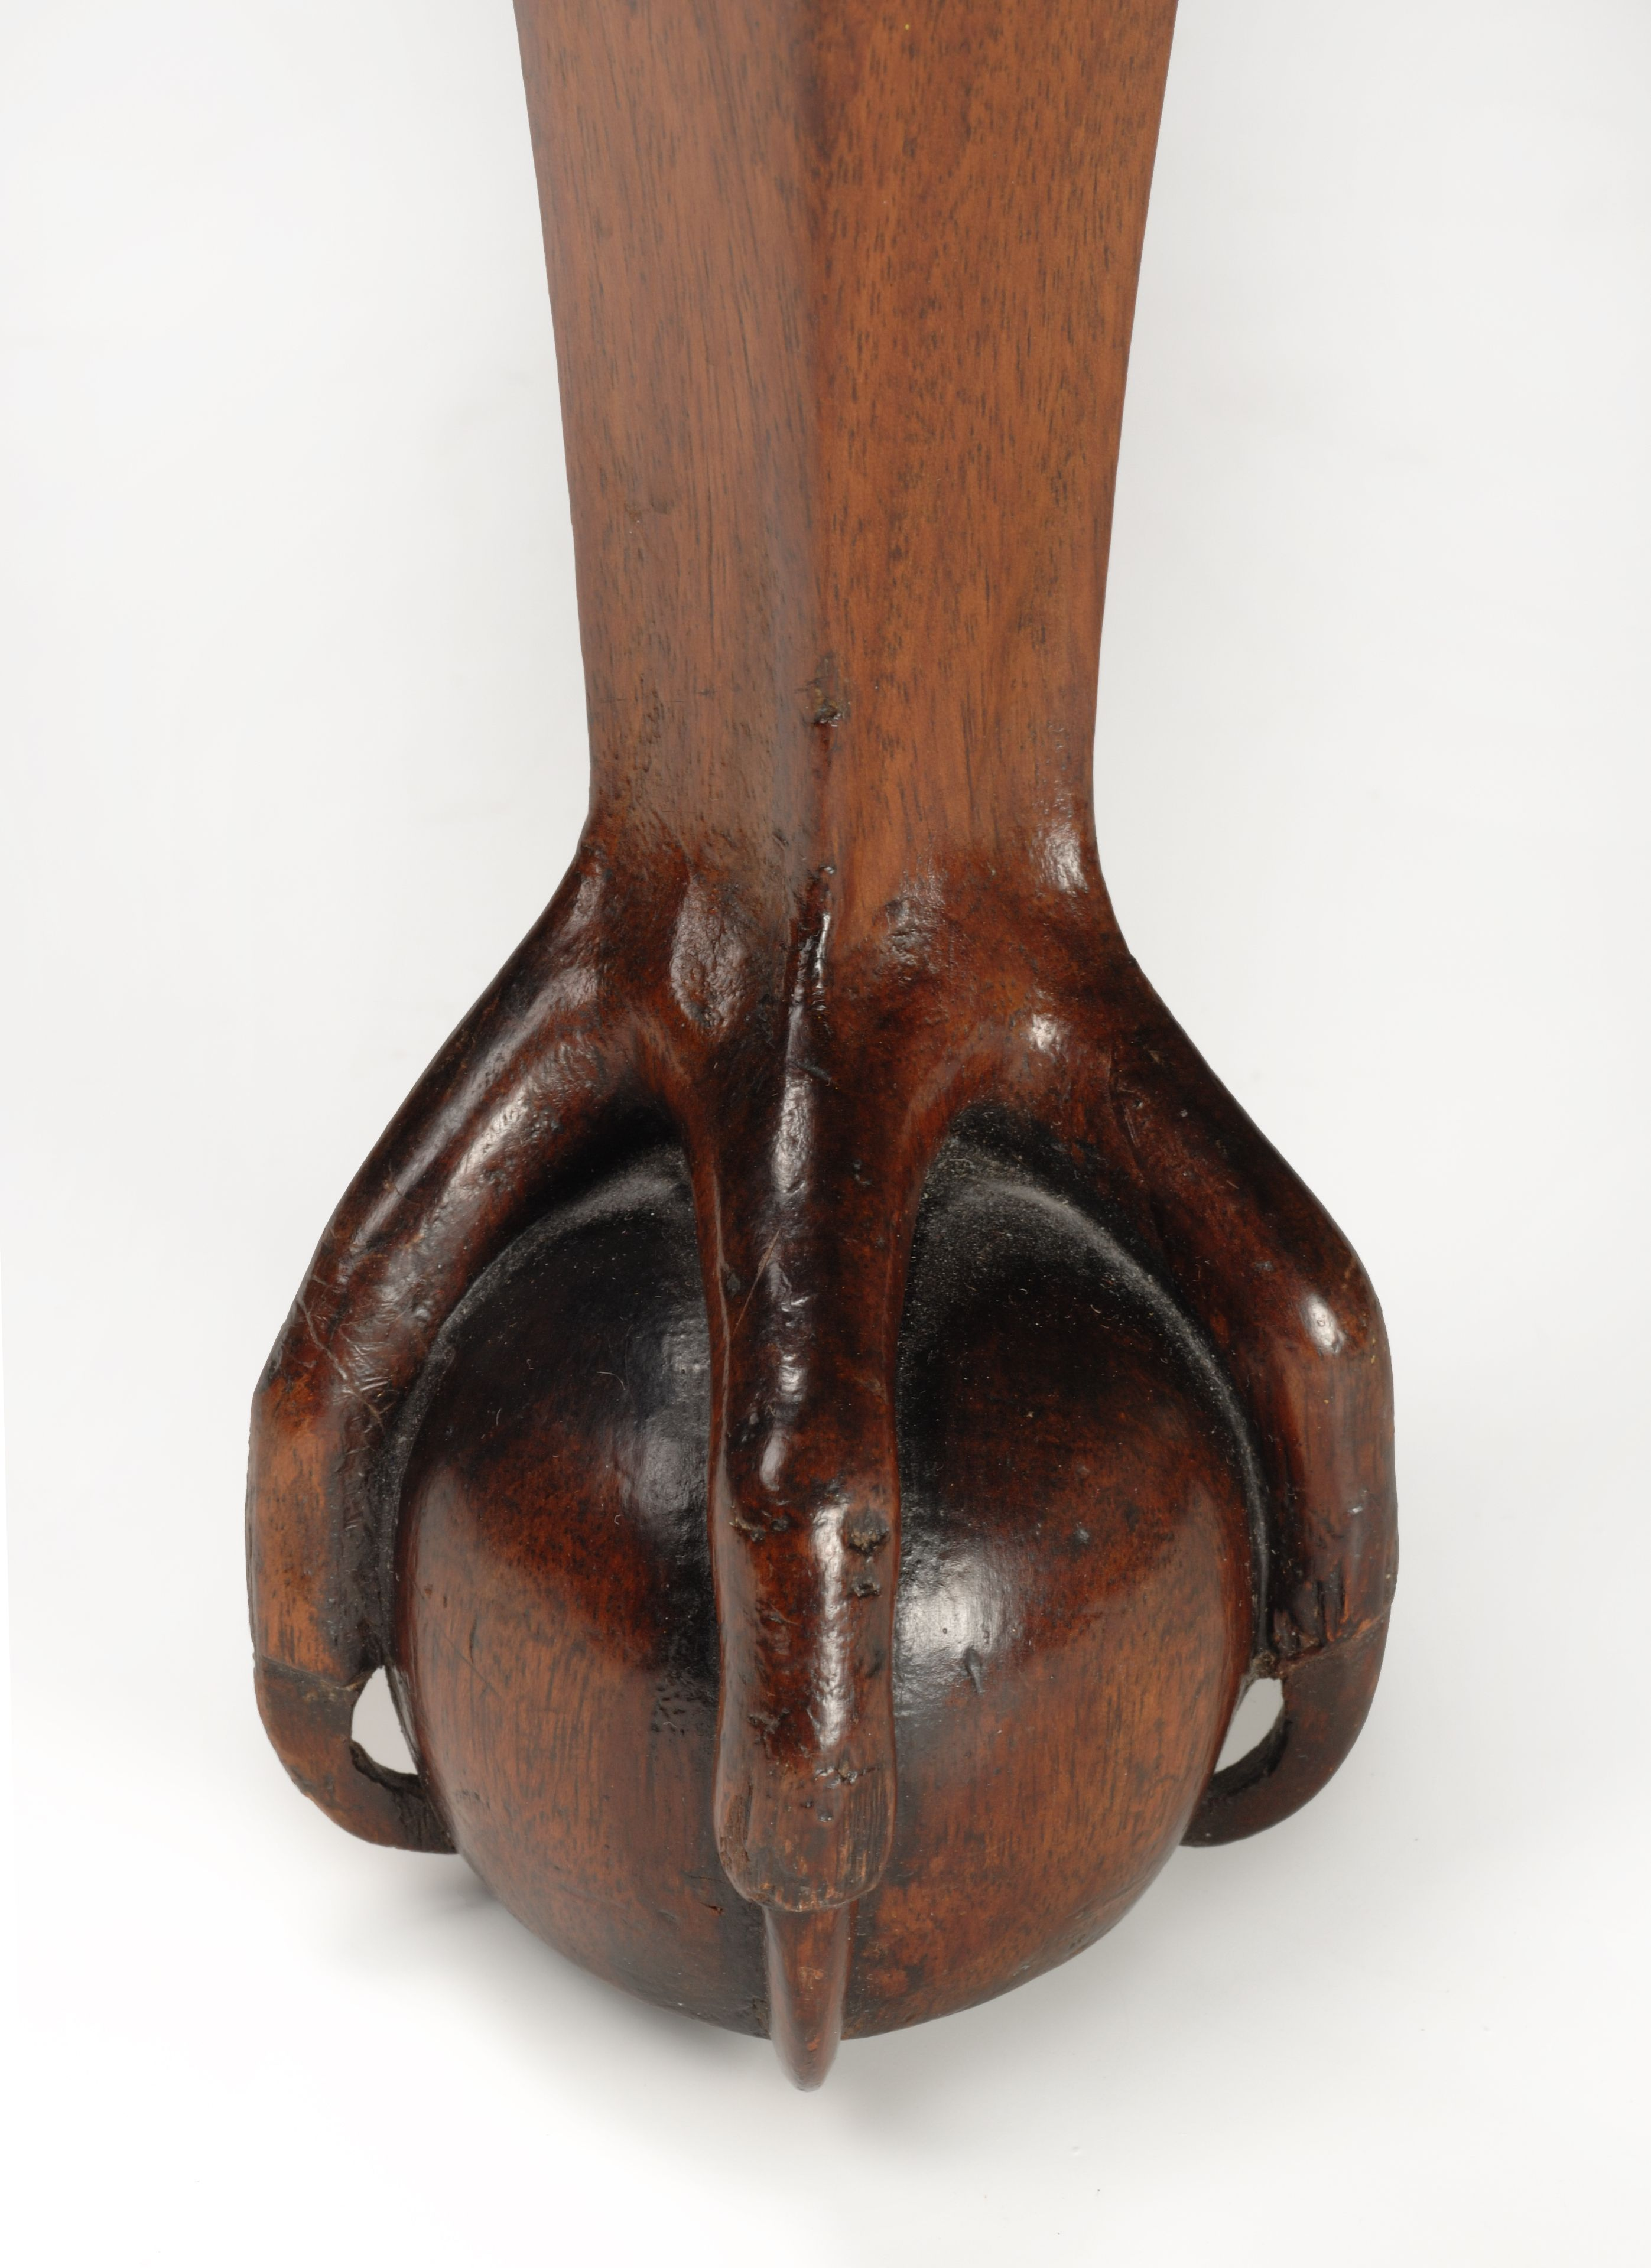 The Ball And Claw Foot Is A Distinctive Feature Of Newport